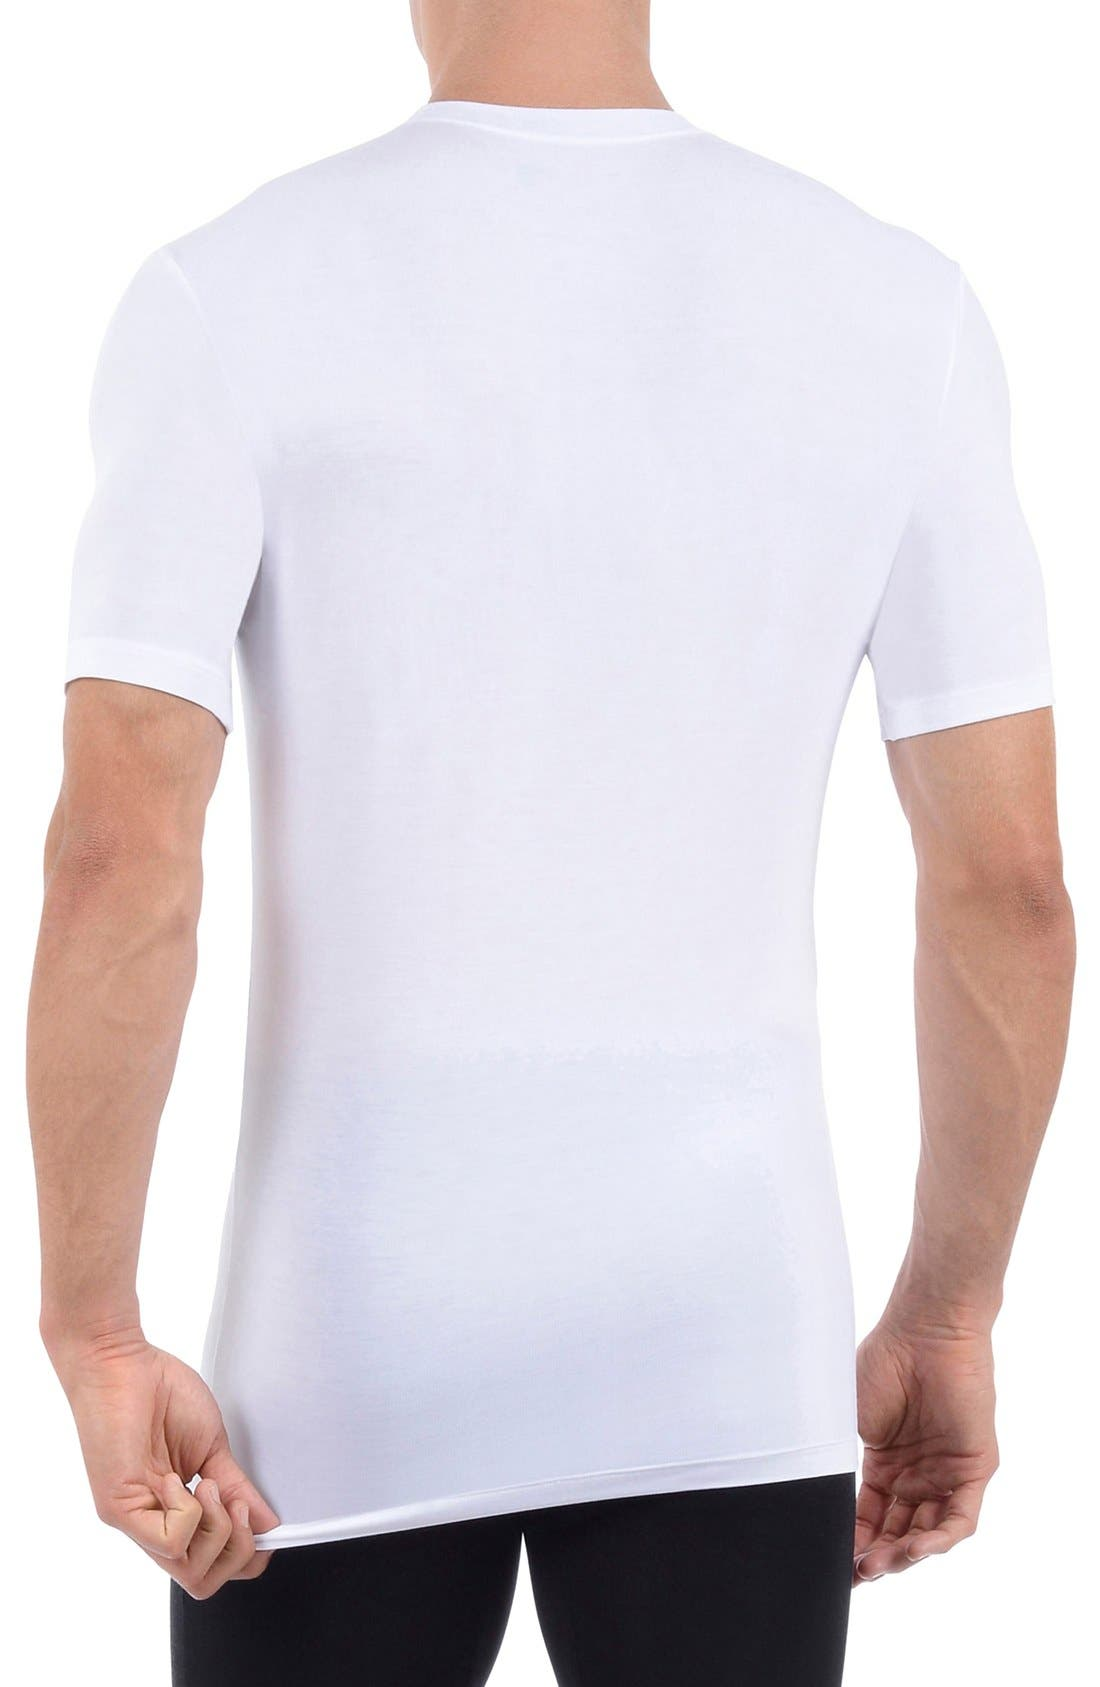 Second Skin Crewneck Undershirt,                             Alternate thumbnail 2, color,                             WHITE